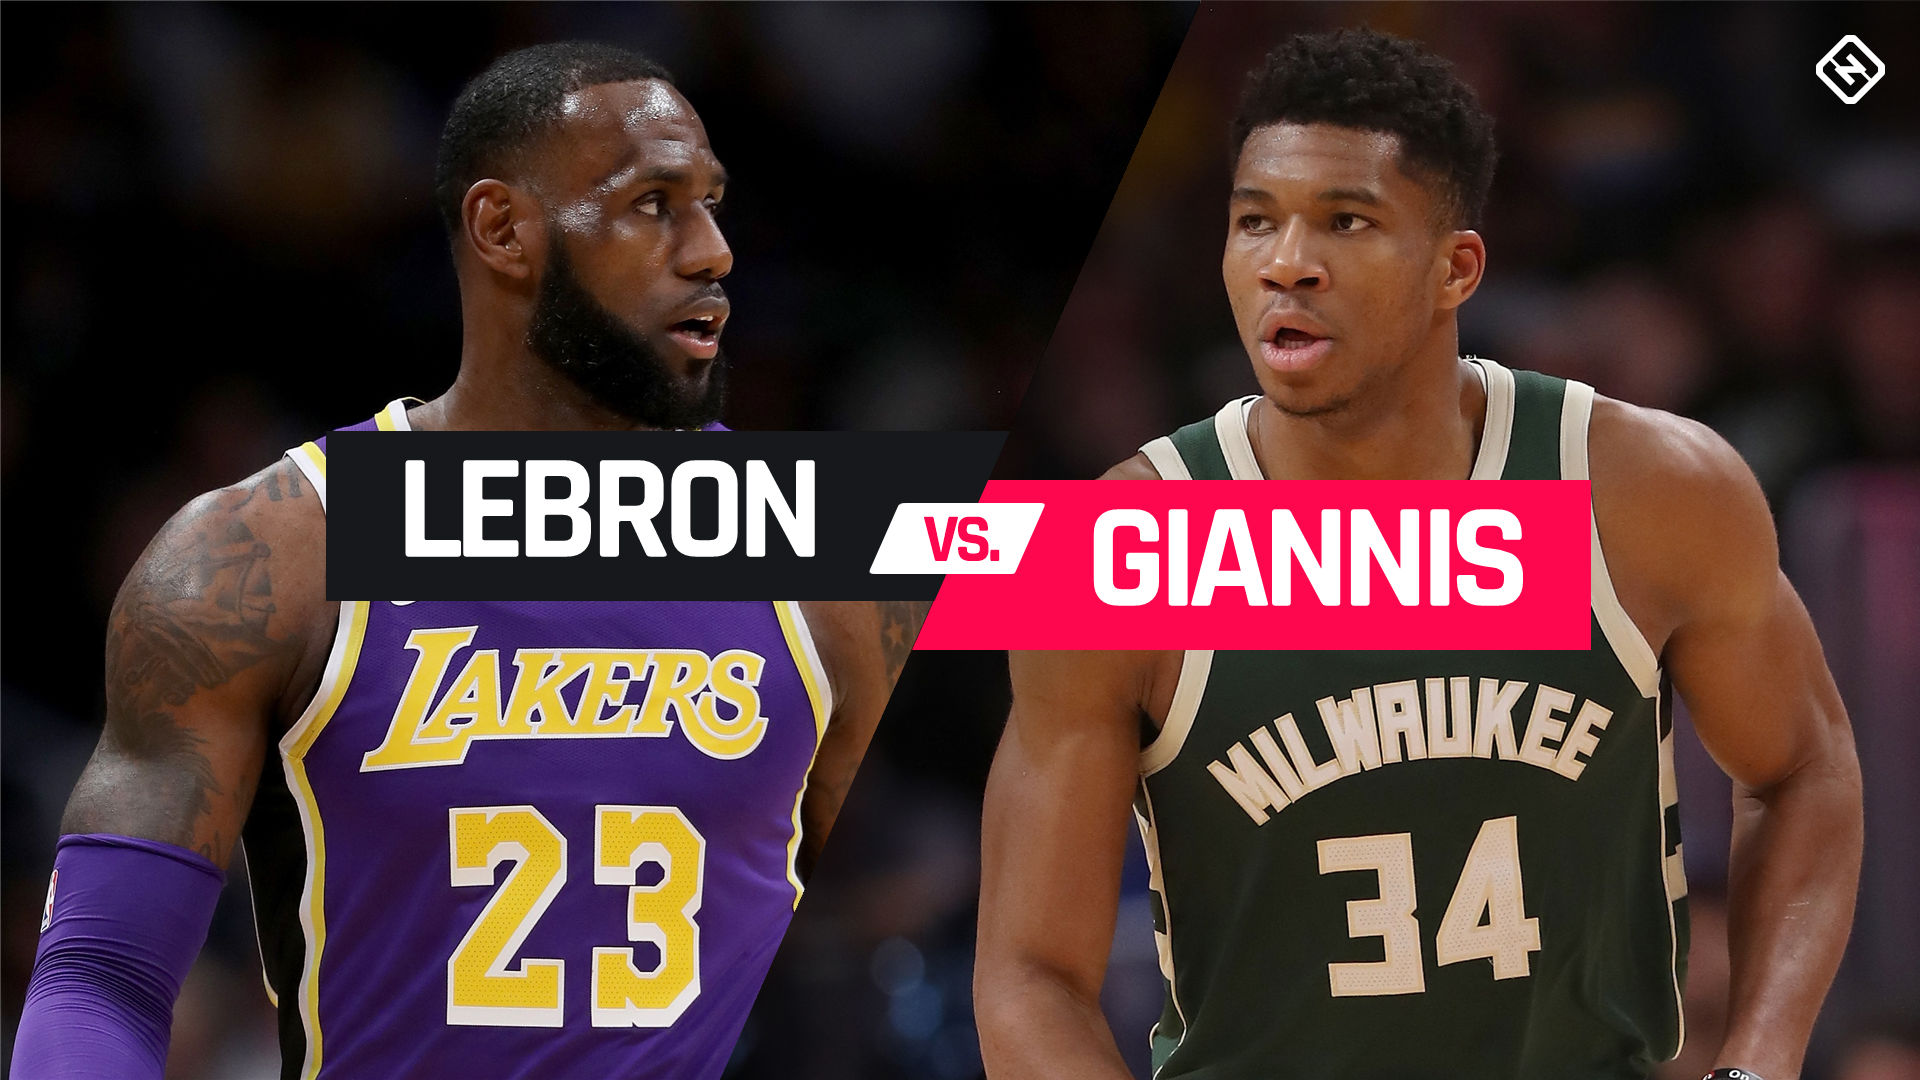 Nba All Star Game 2019 Rosters Draft Results For Team